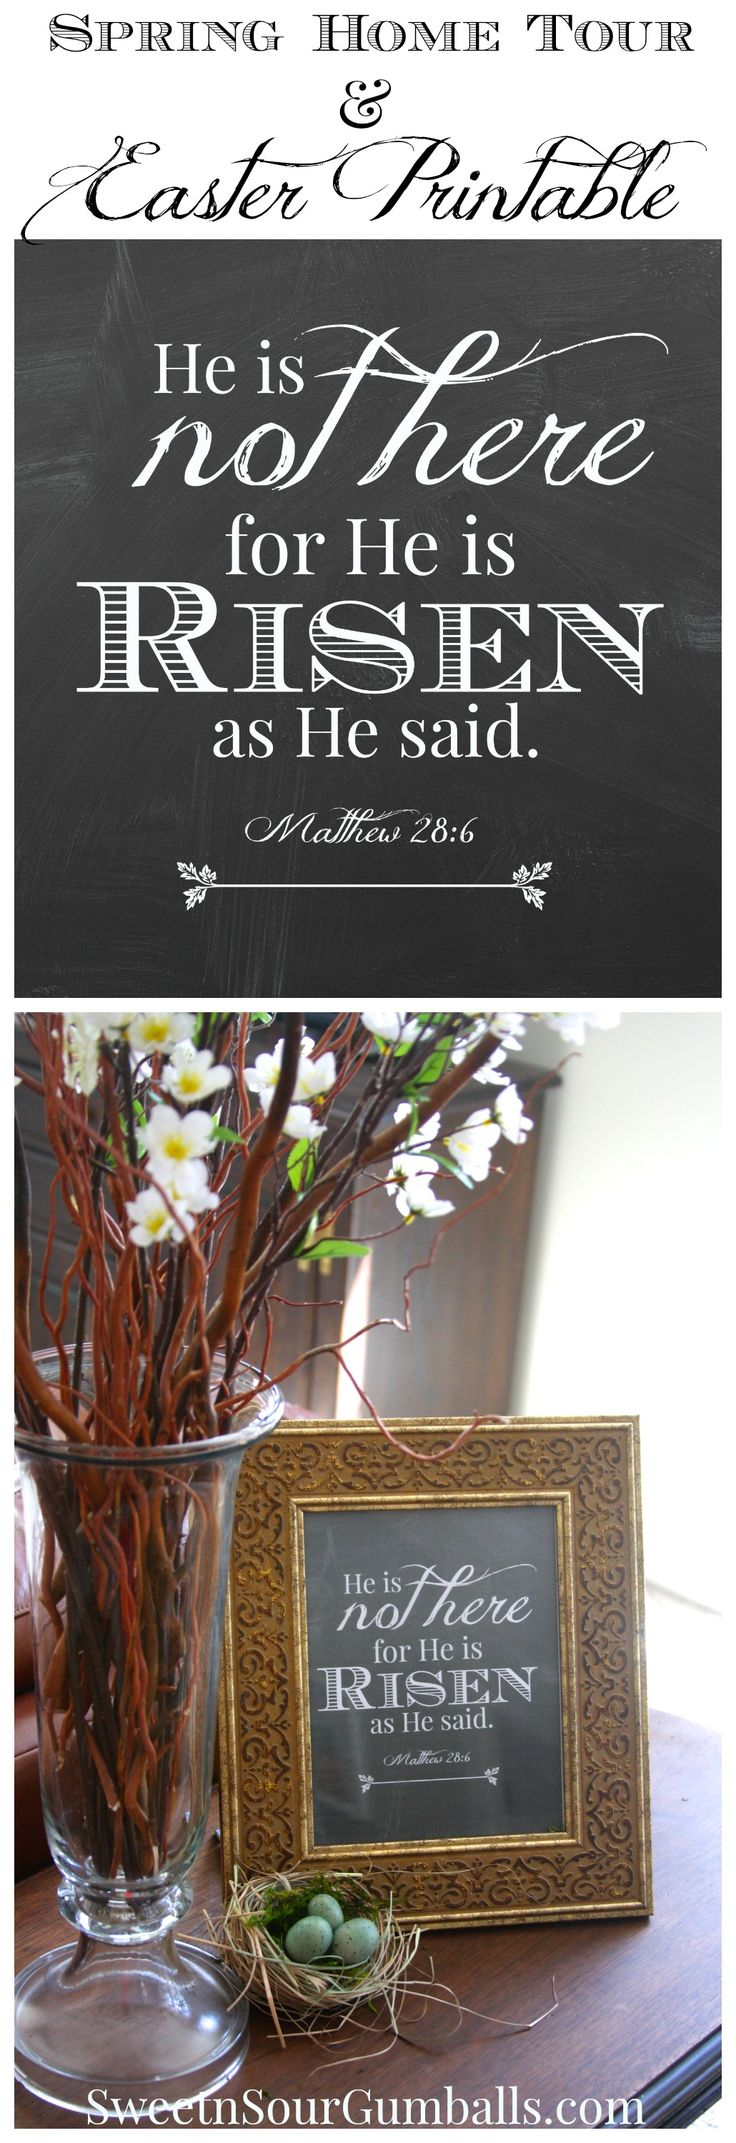 Christian easter decorations for the home - Spring Home Tour And 2 Free Printables To Use For Your Easter Decorating